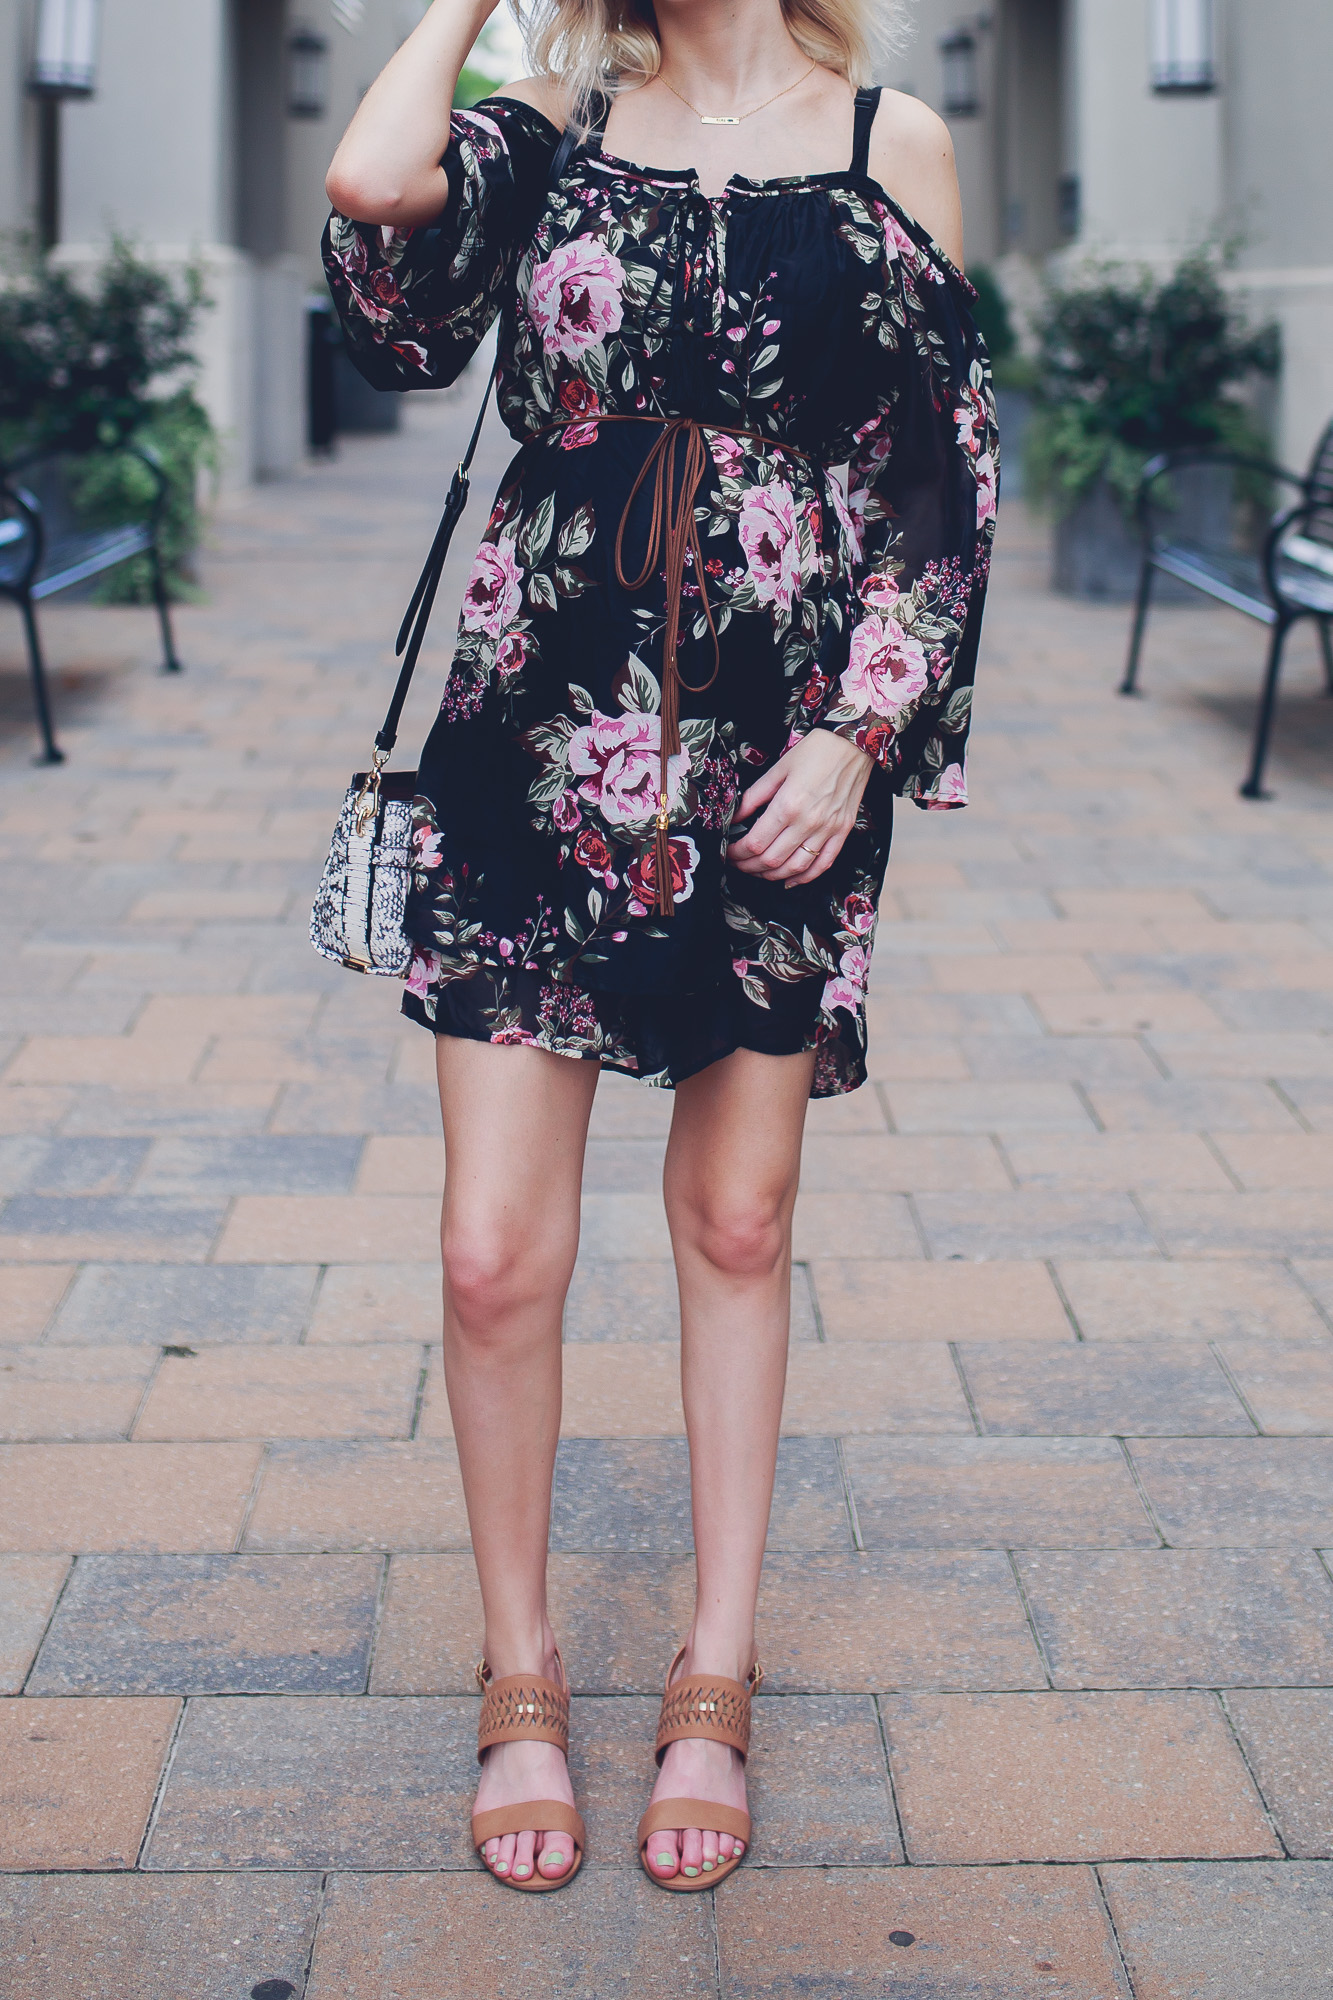 Fashion, lifestyle, and beauty blogger / vlogger Jessica Linn from Linn Style wearing an off the shoulder black floral mid thigh dress with Matisse footwear heels, a coach purse, and a Mamma Bear necklace from CY Design Studio in North Hills Raleigh North Carolina